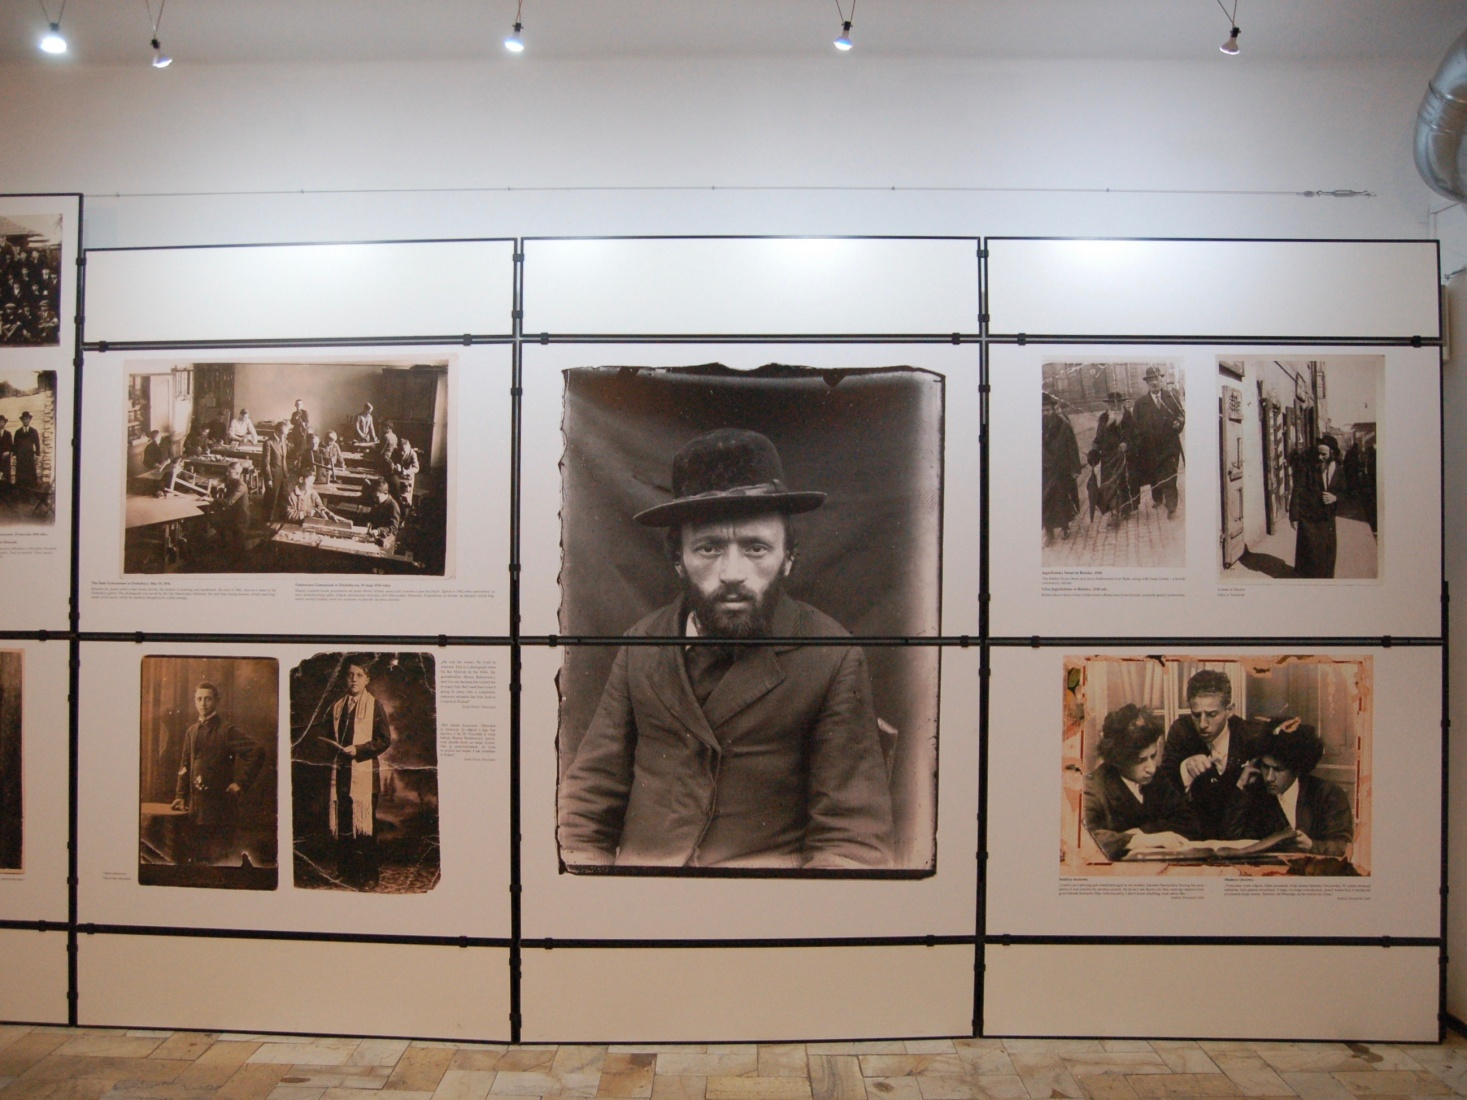 An exhibition at the Jewish Center in Kielce, Poland, located near the site of an infamous pogrom in 1946. Exhibitions focus on the long history of Jews in the city.